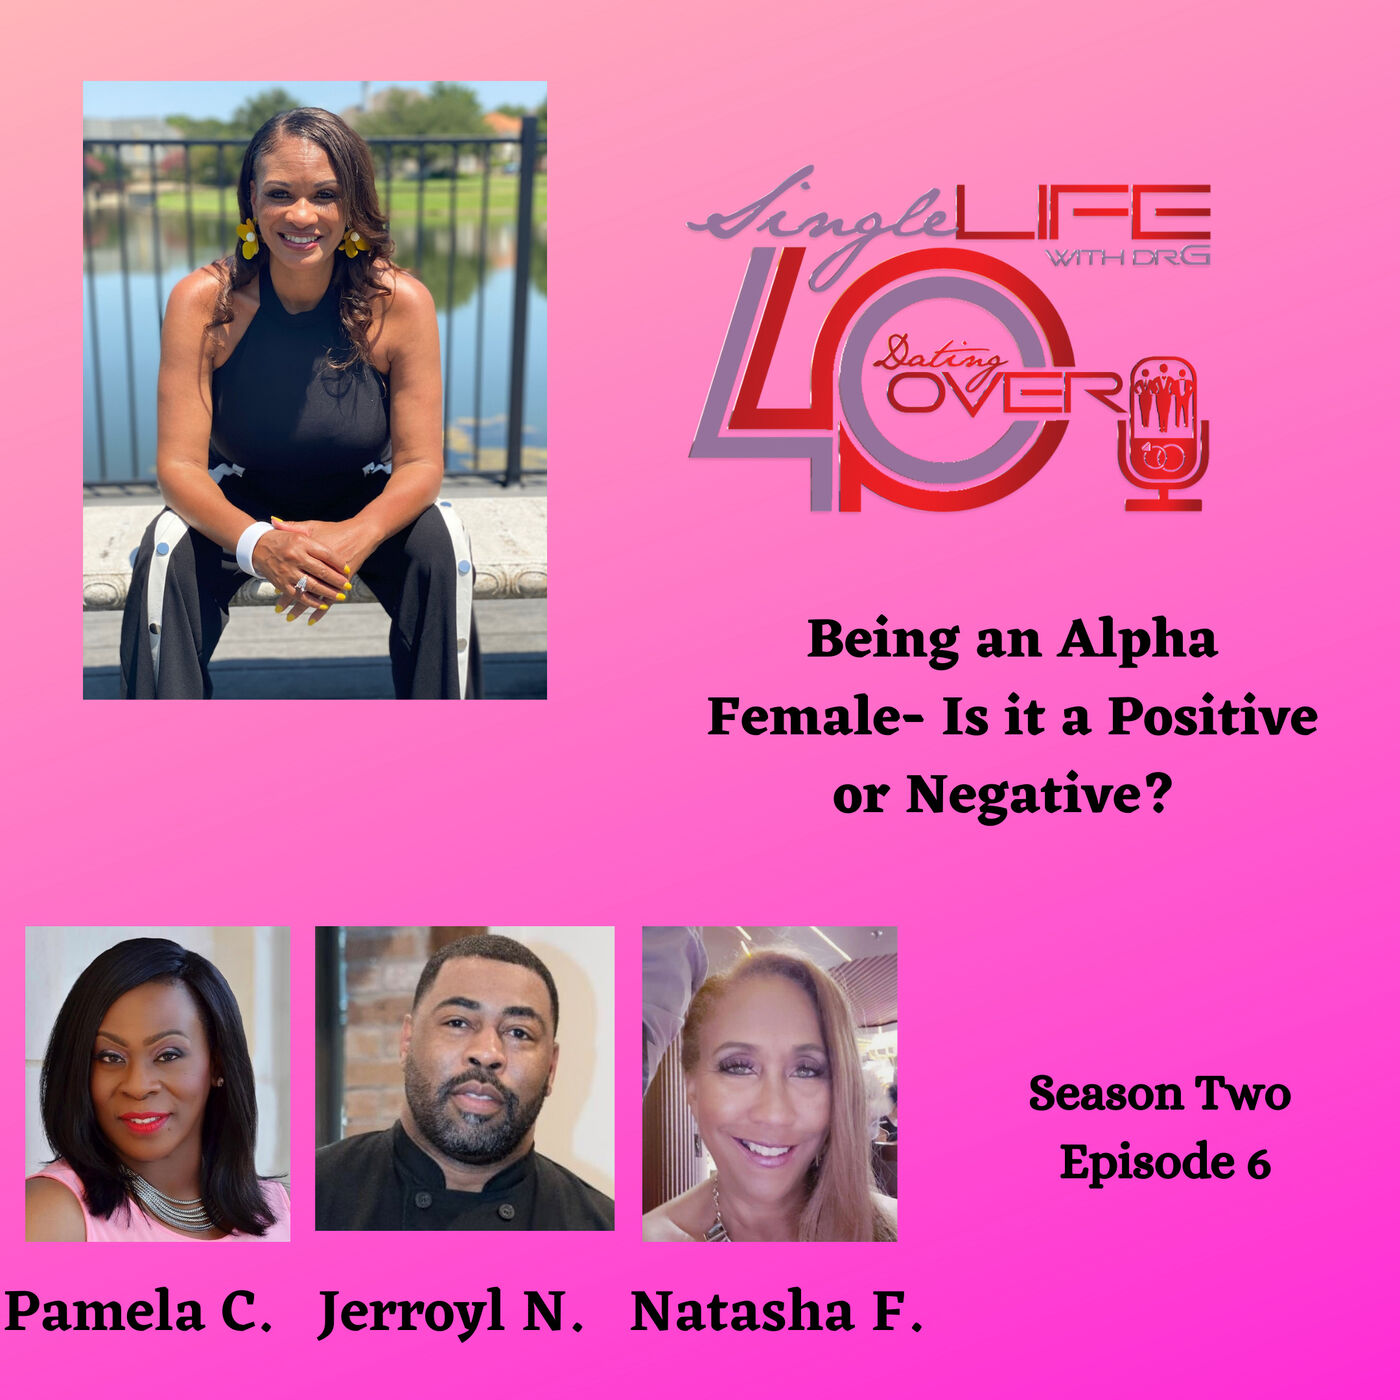 Being an Alpha Female- Is it a Positive or Negative?